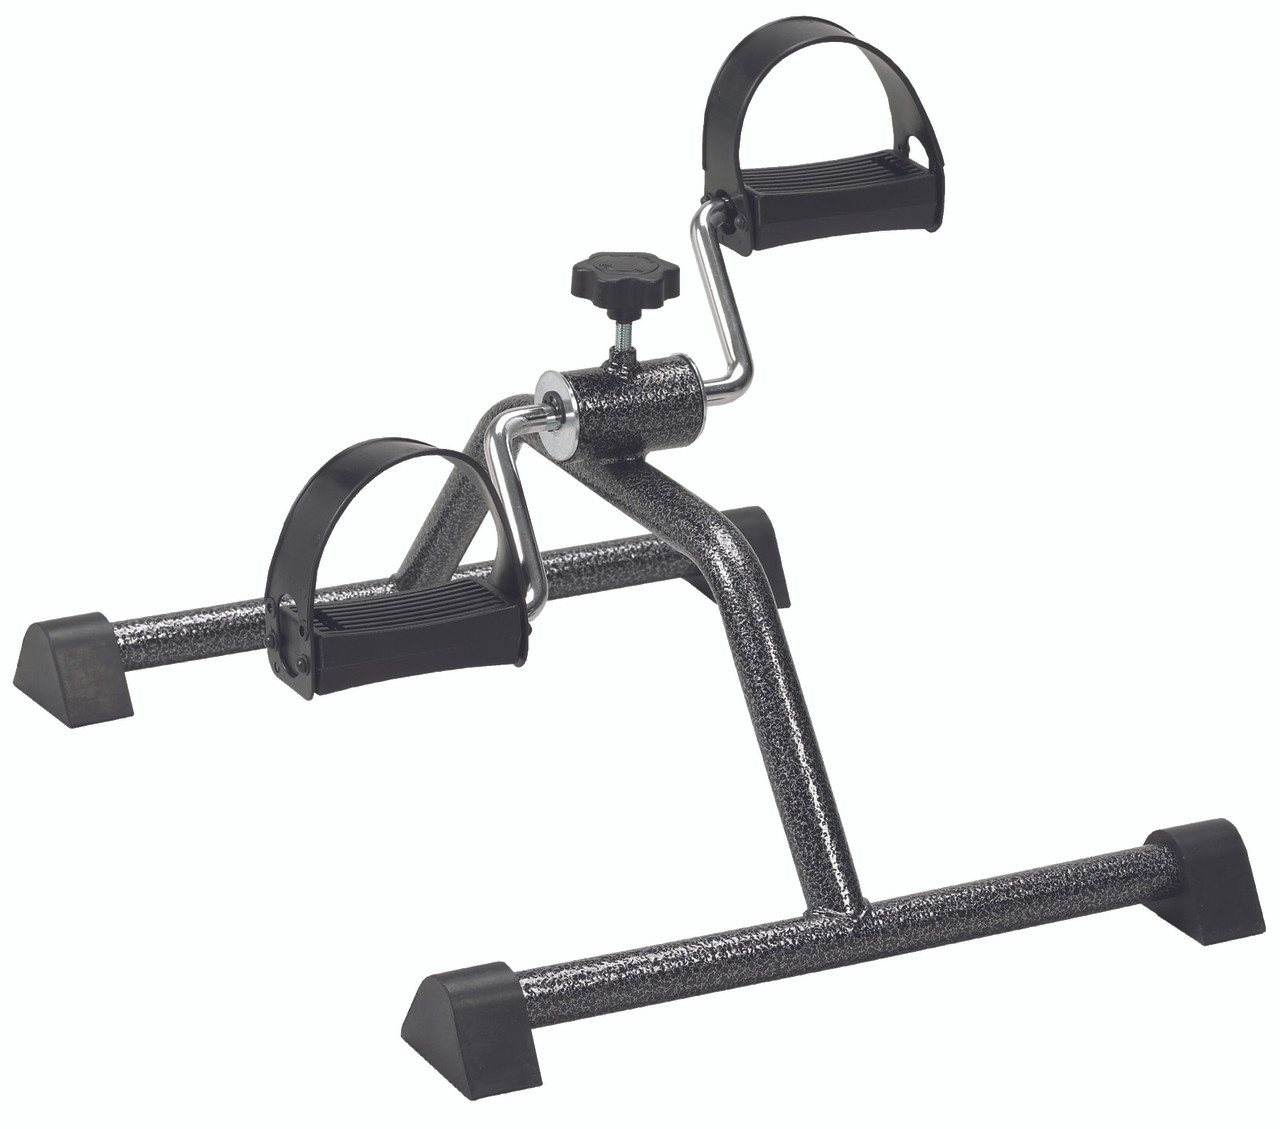 CanDo¨ Pedal Exerciser - Preassembled